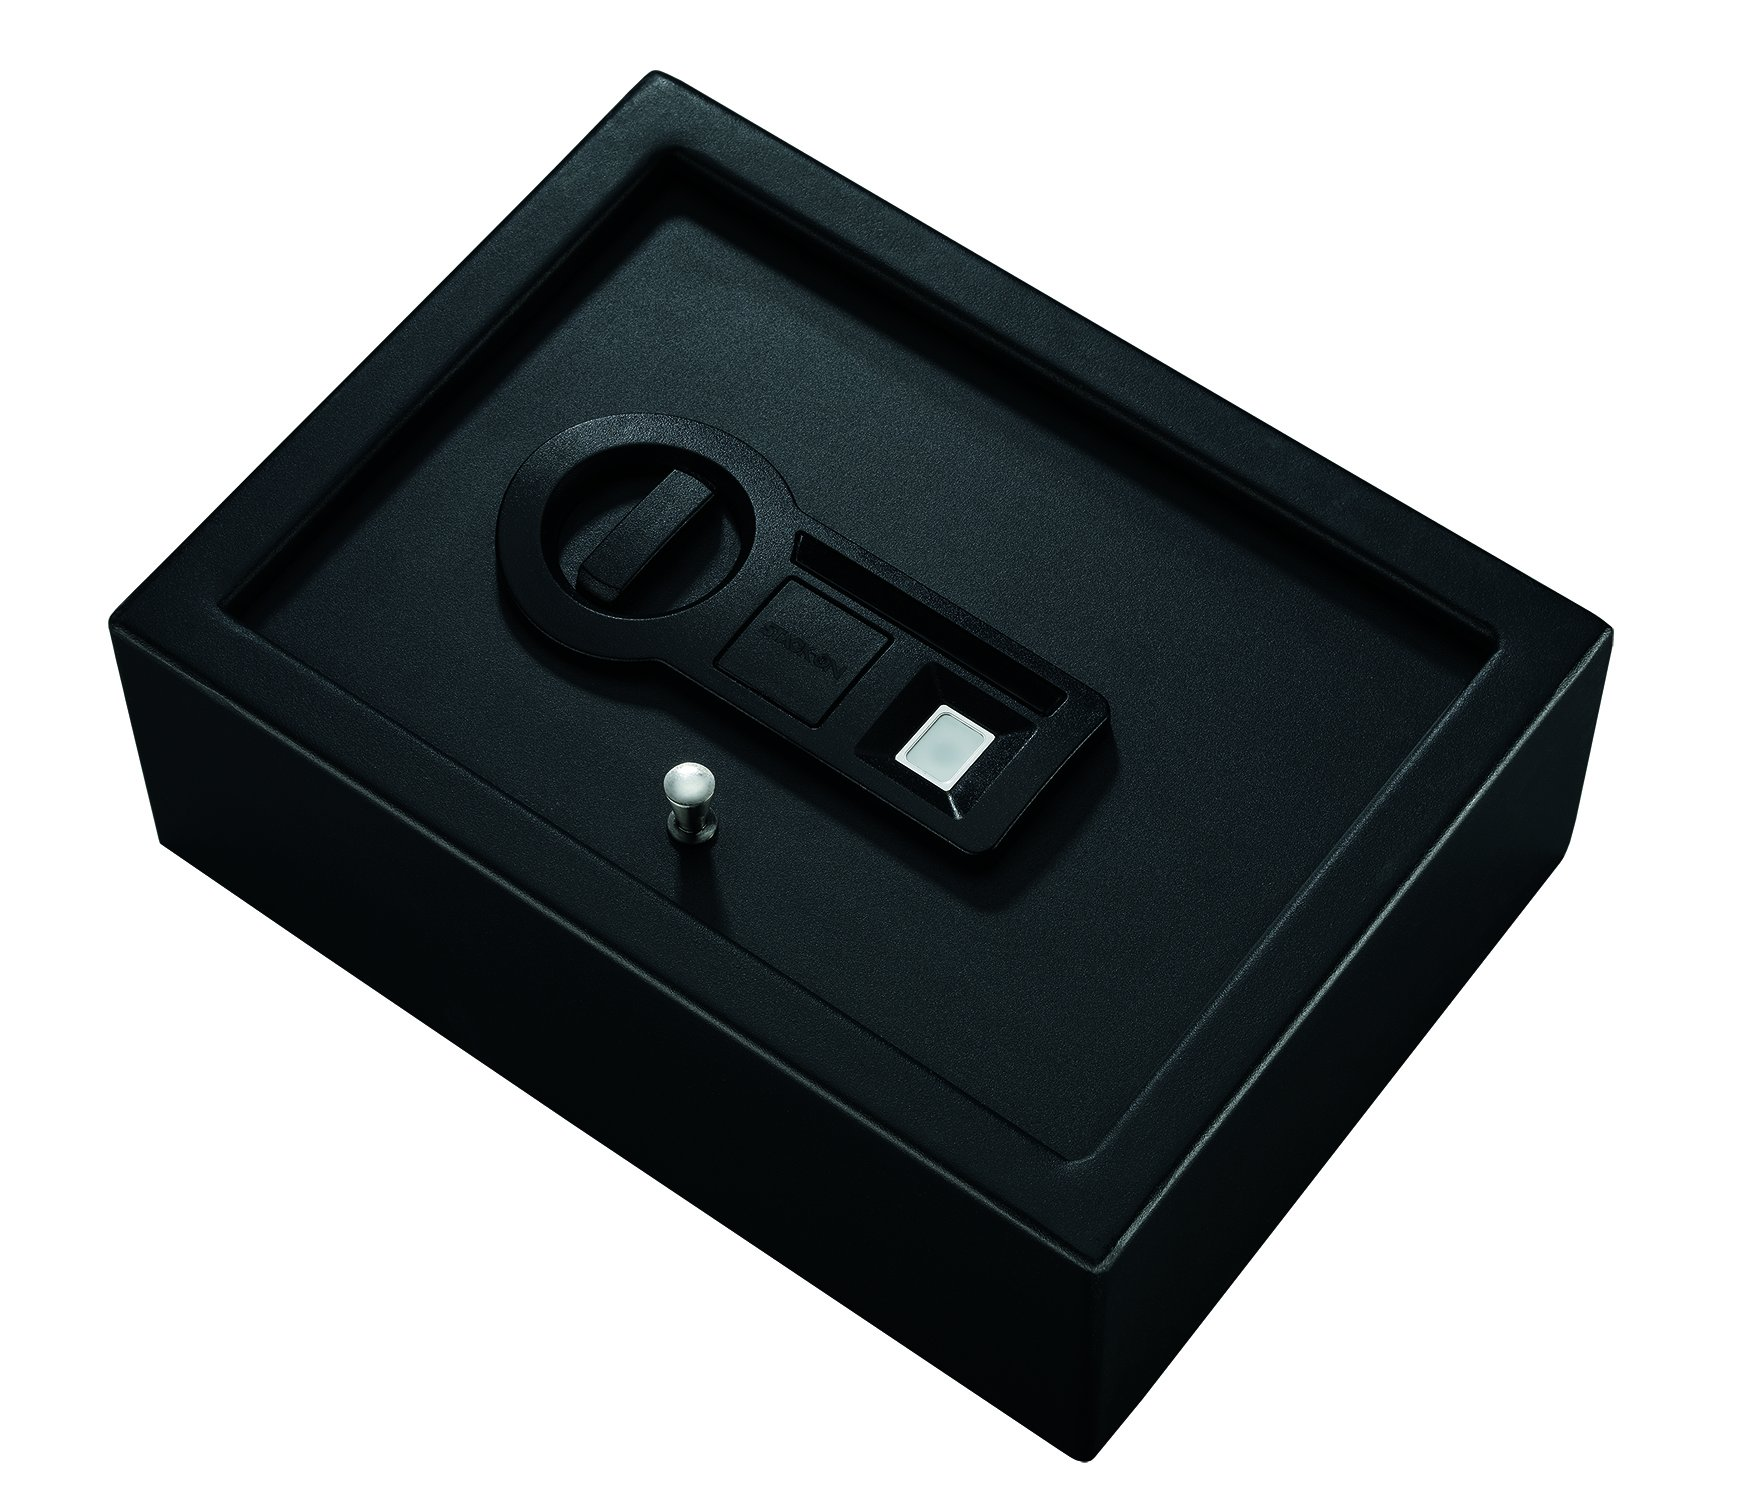 Stack-On PDS-1500-B Personal Drawer Safe with Biometric Lock by Stack-On